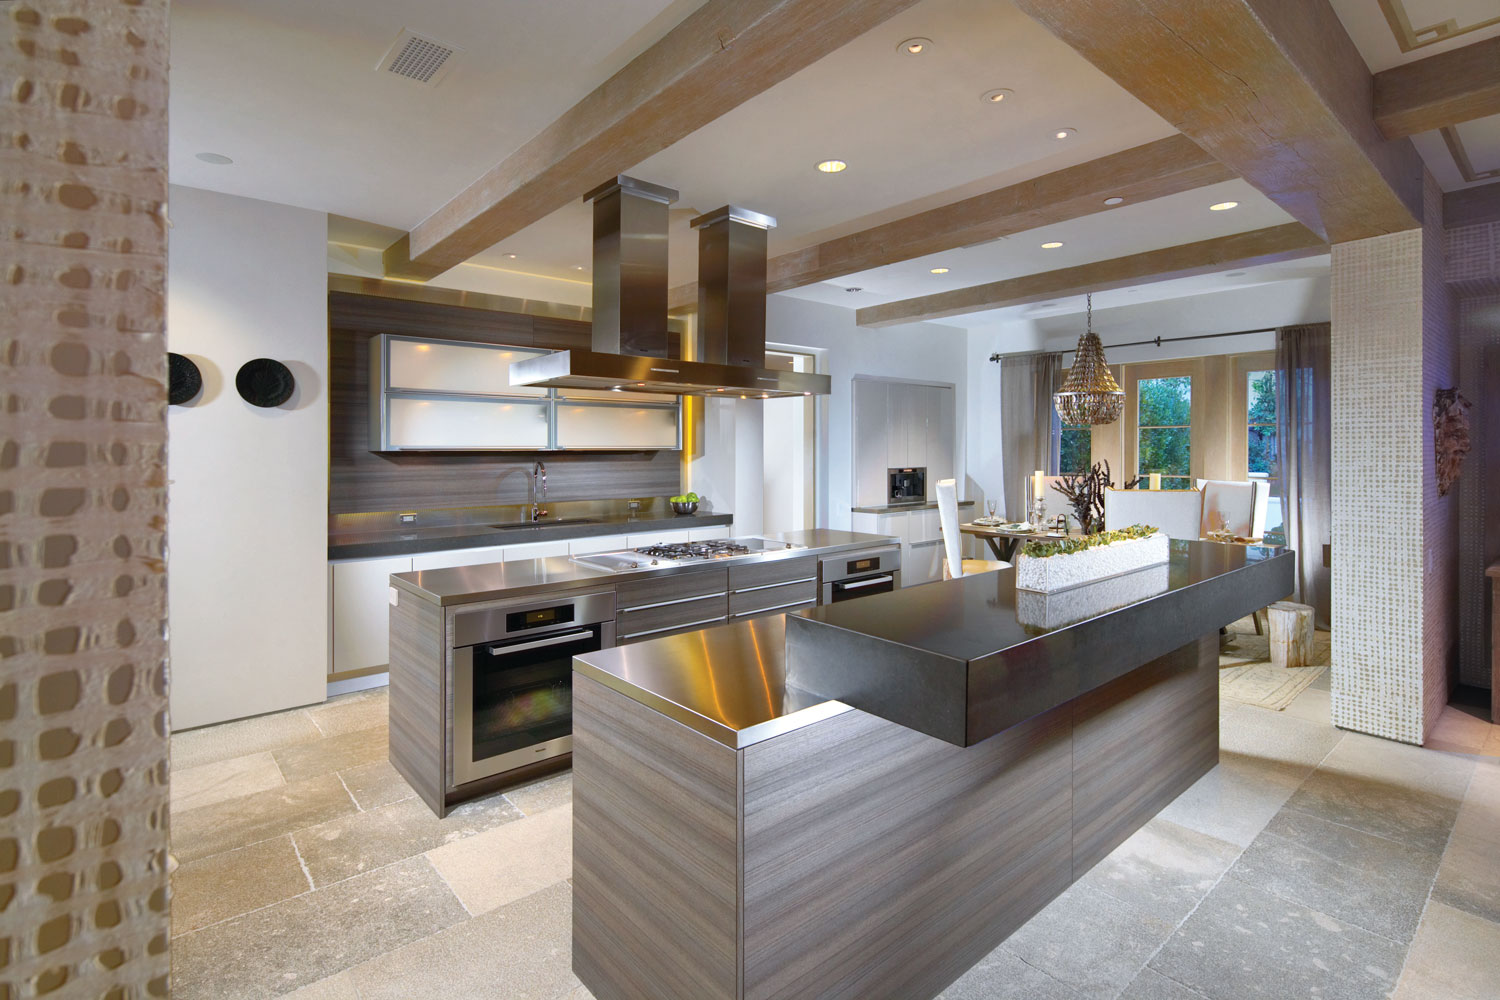 Modern-Kitchen-Beamed-Ceiling-Double-Island-Corbin-Reeves.jpg